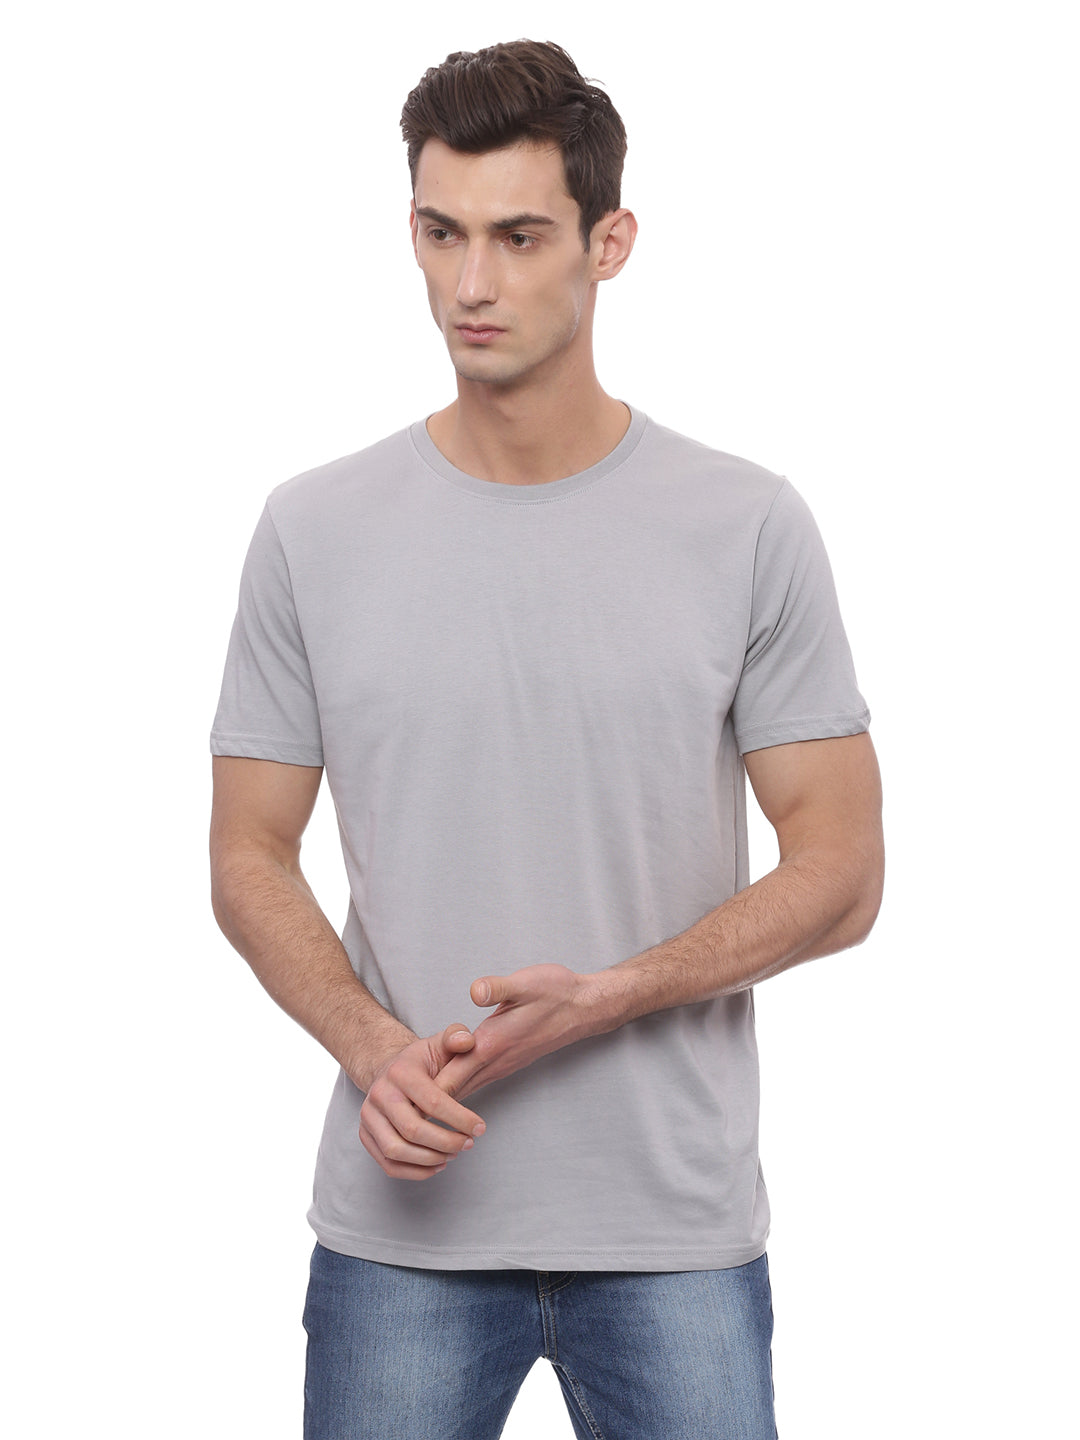 The Crew Tee - London Grey